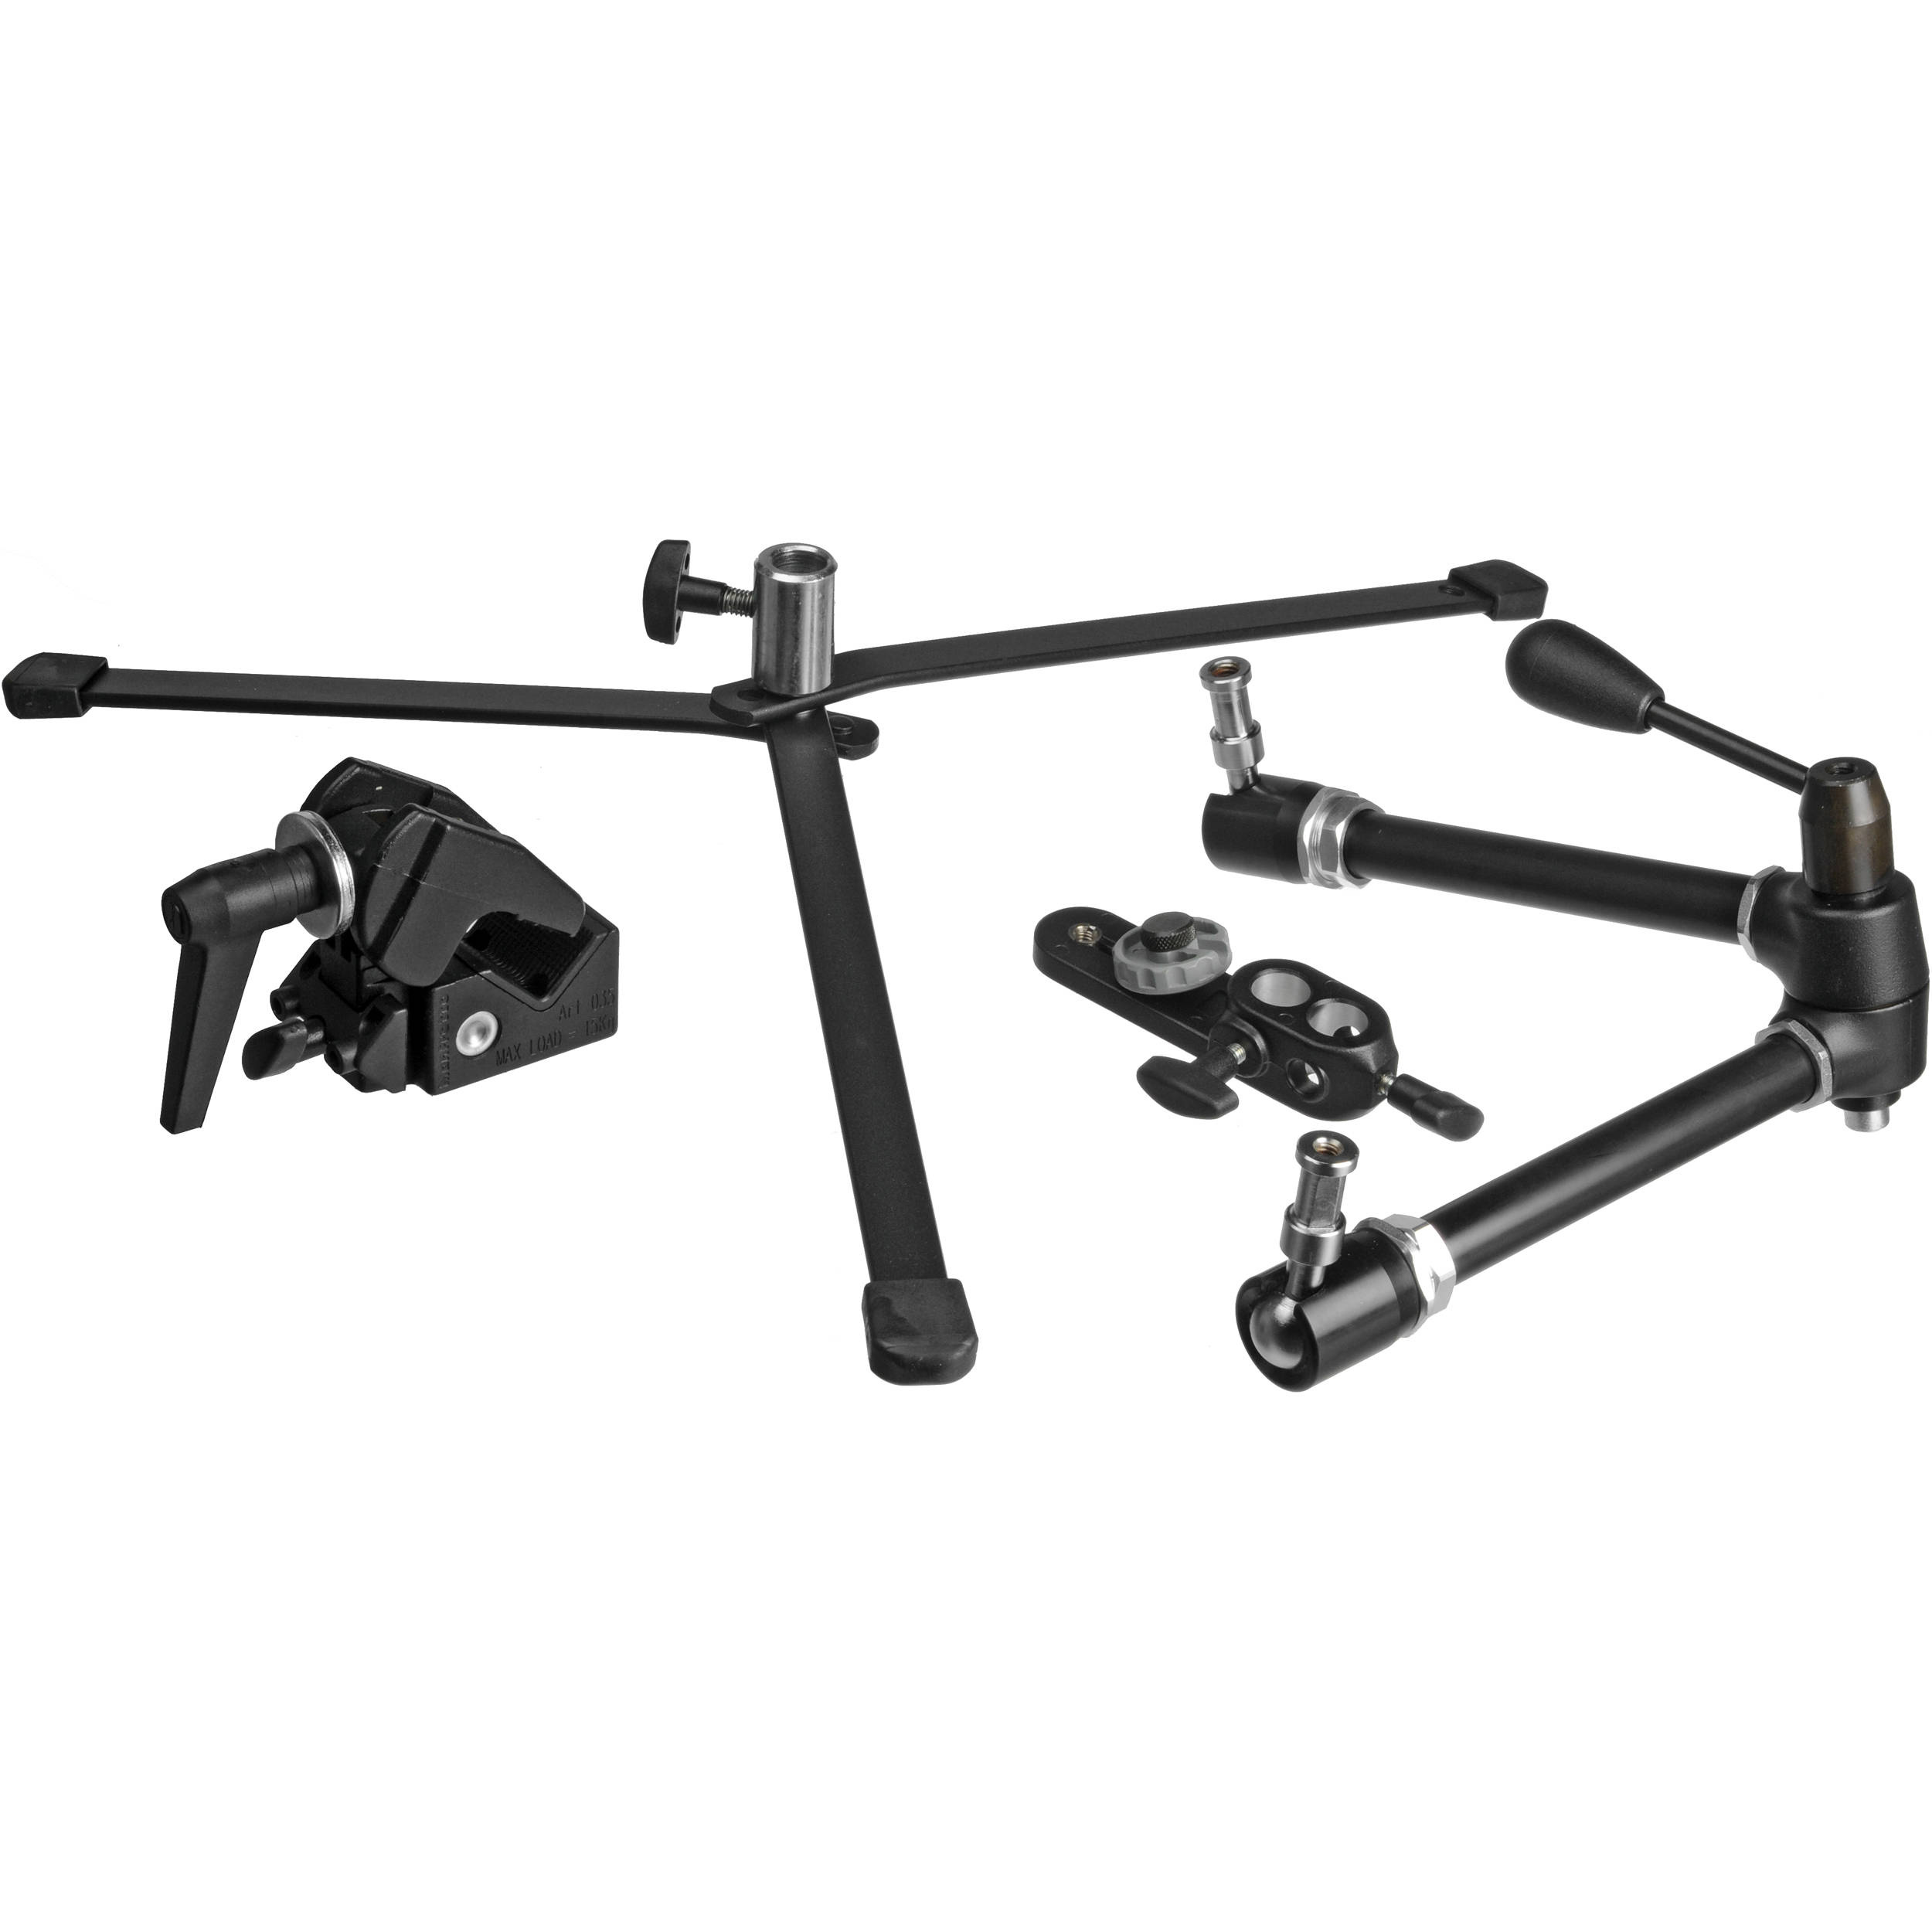 Manfrotto 143 Magic Arm Kit